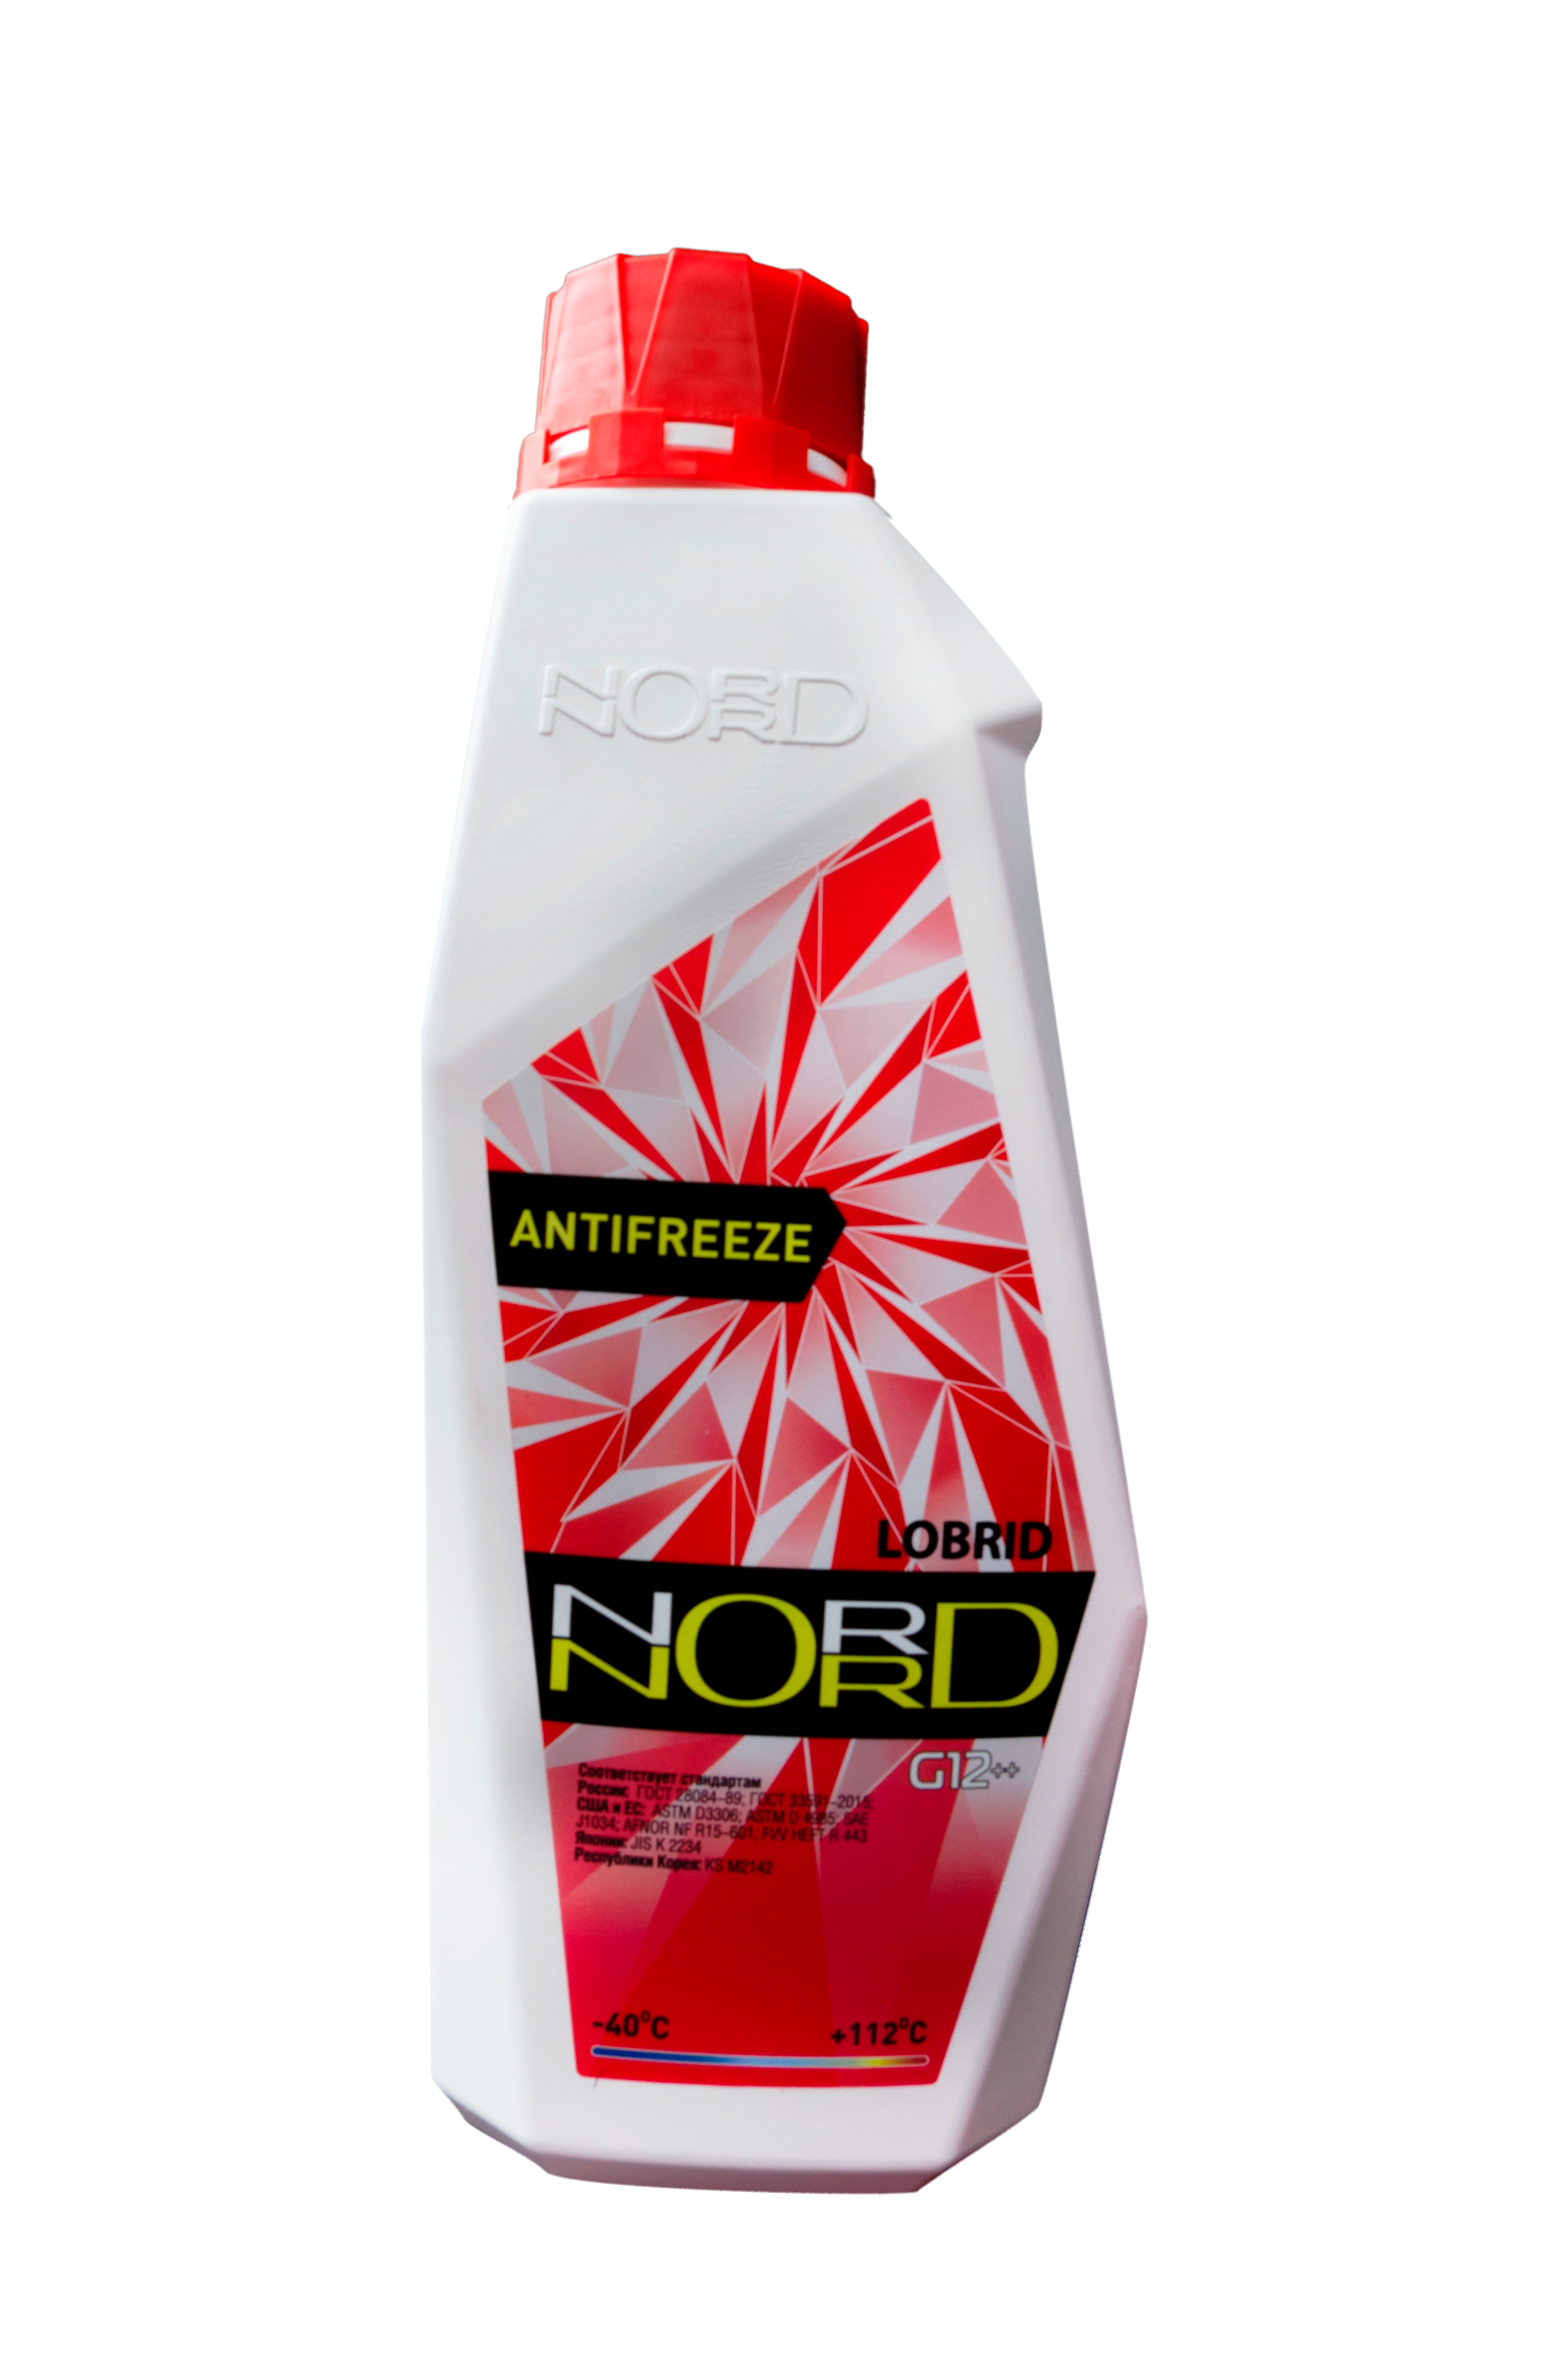 nord NR20225 Антифриз NORD High Quality Antifreeze готовый -40C красный 1 кг